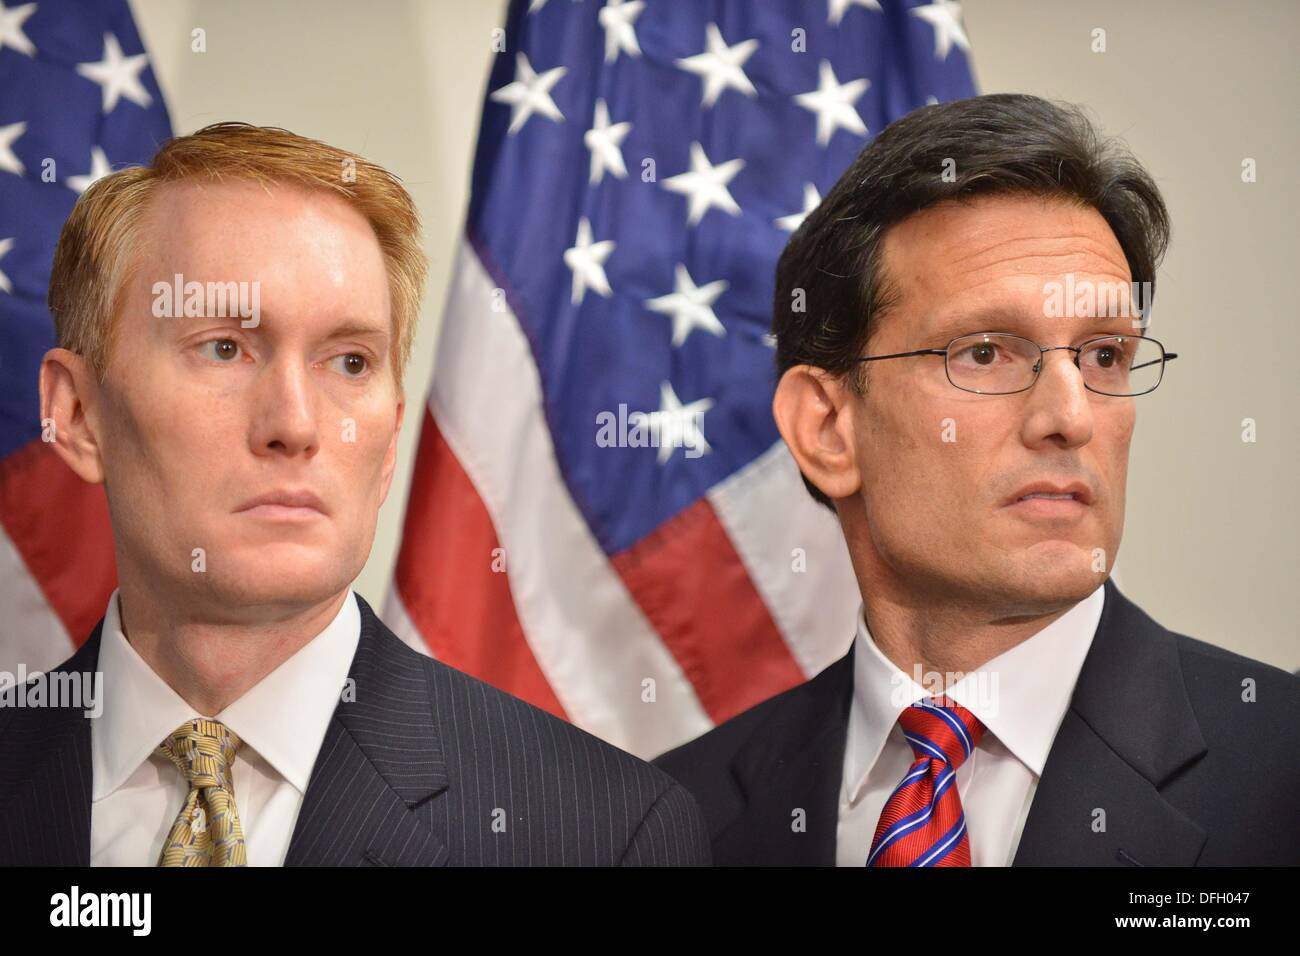 Washington, DC, USA. 4th Oct, 2013. Republican House members James Lankford, Oklahoma, and Majority Leader Eric Cantor, Virginia, listen to House Speaker John Boehner discuss the government shutdown and looming debt ceiling crisis. Credit:  Jay Mallin/ZUMAPRESS.com/Alamy Live News - Stock Image